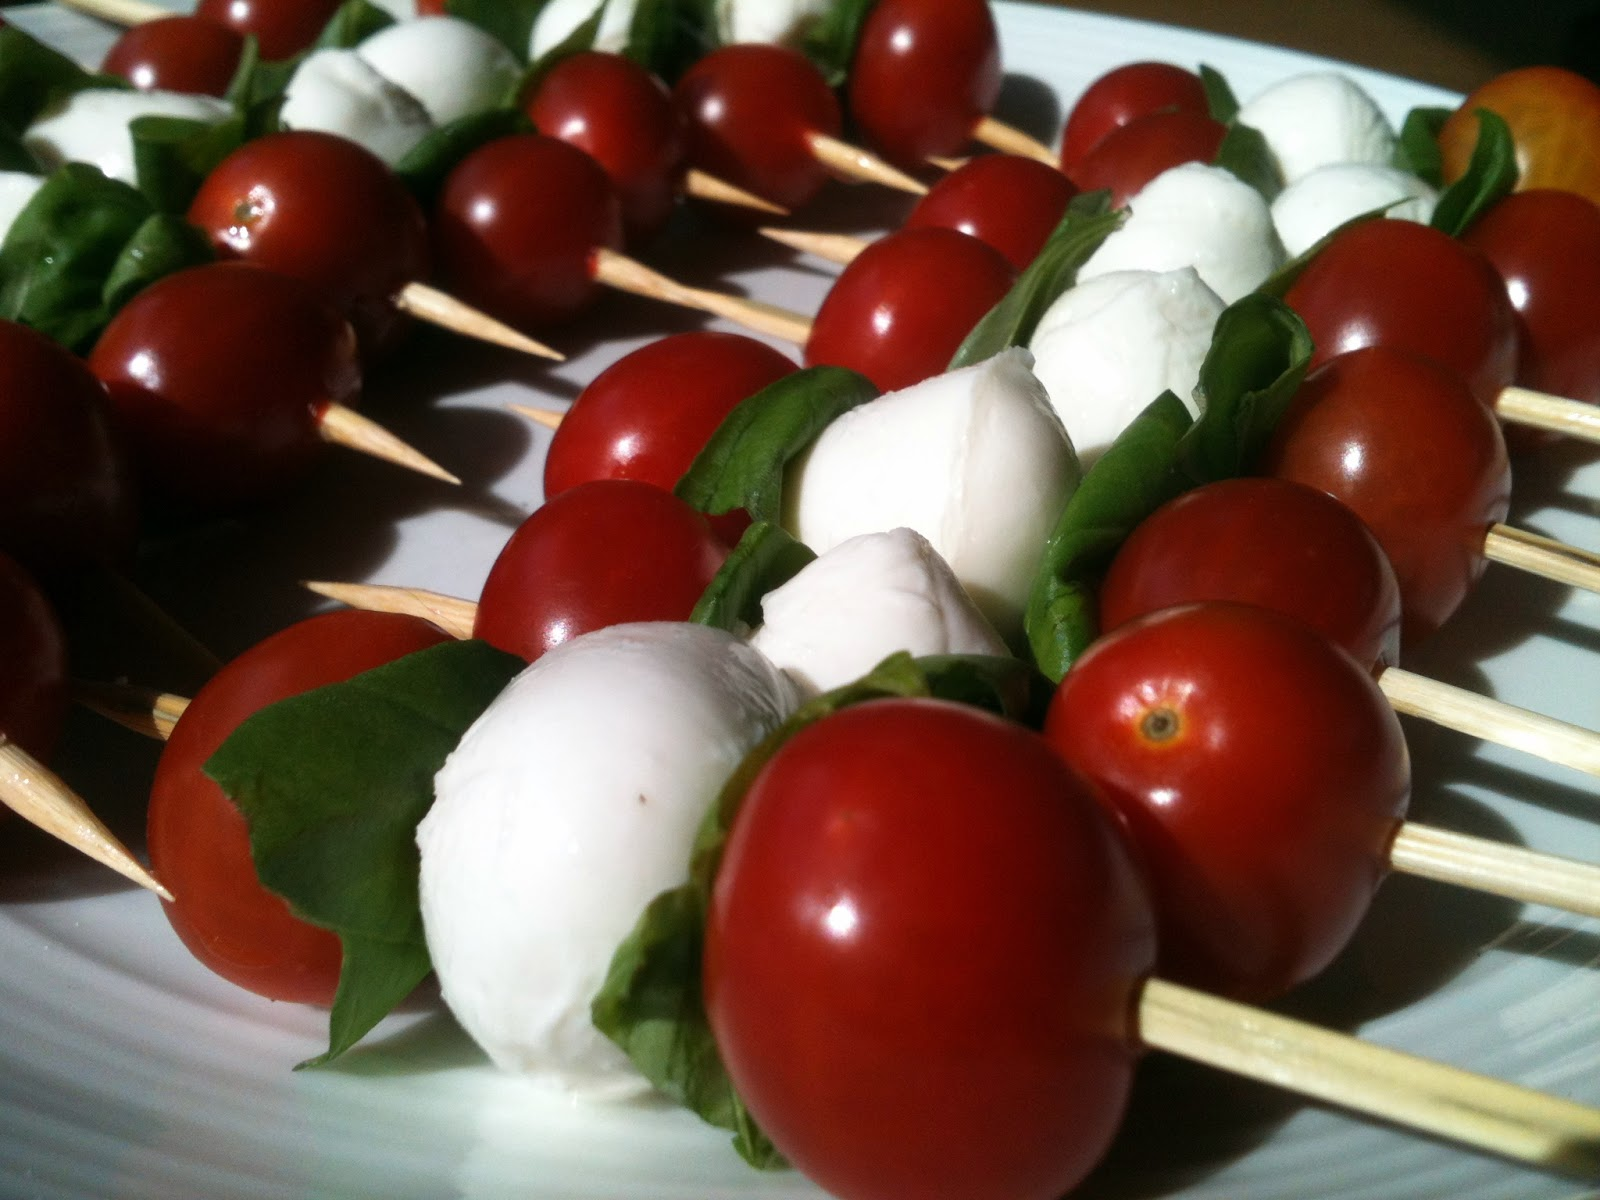 ... of Valley Writer: Tomato, Mozzarella & Basil (Caprese) Skewers